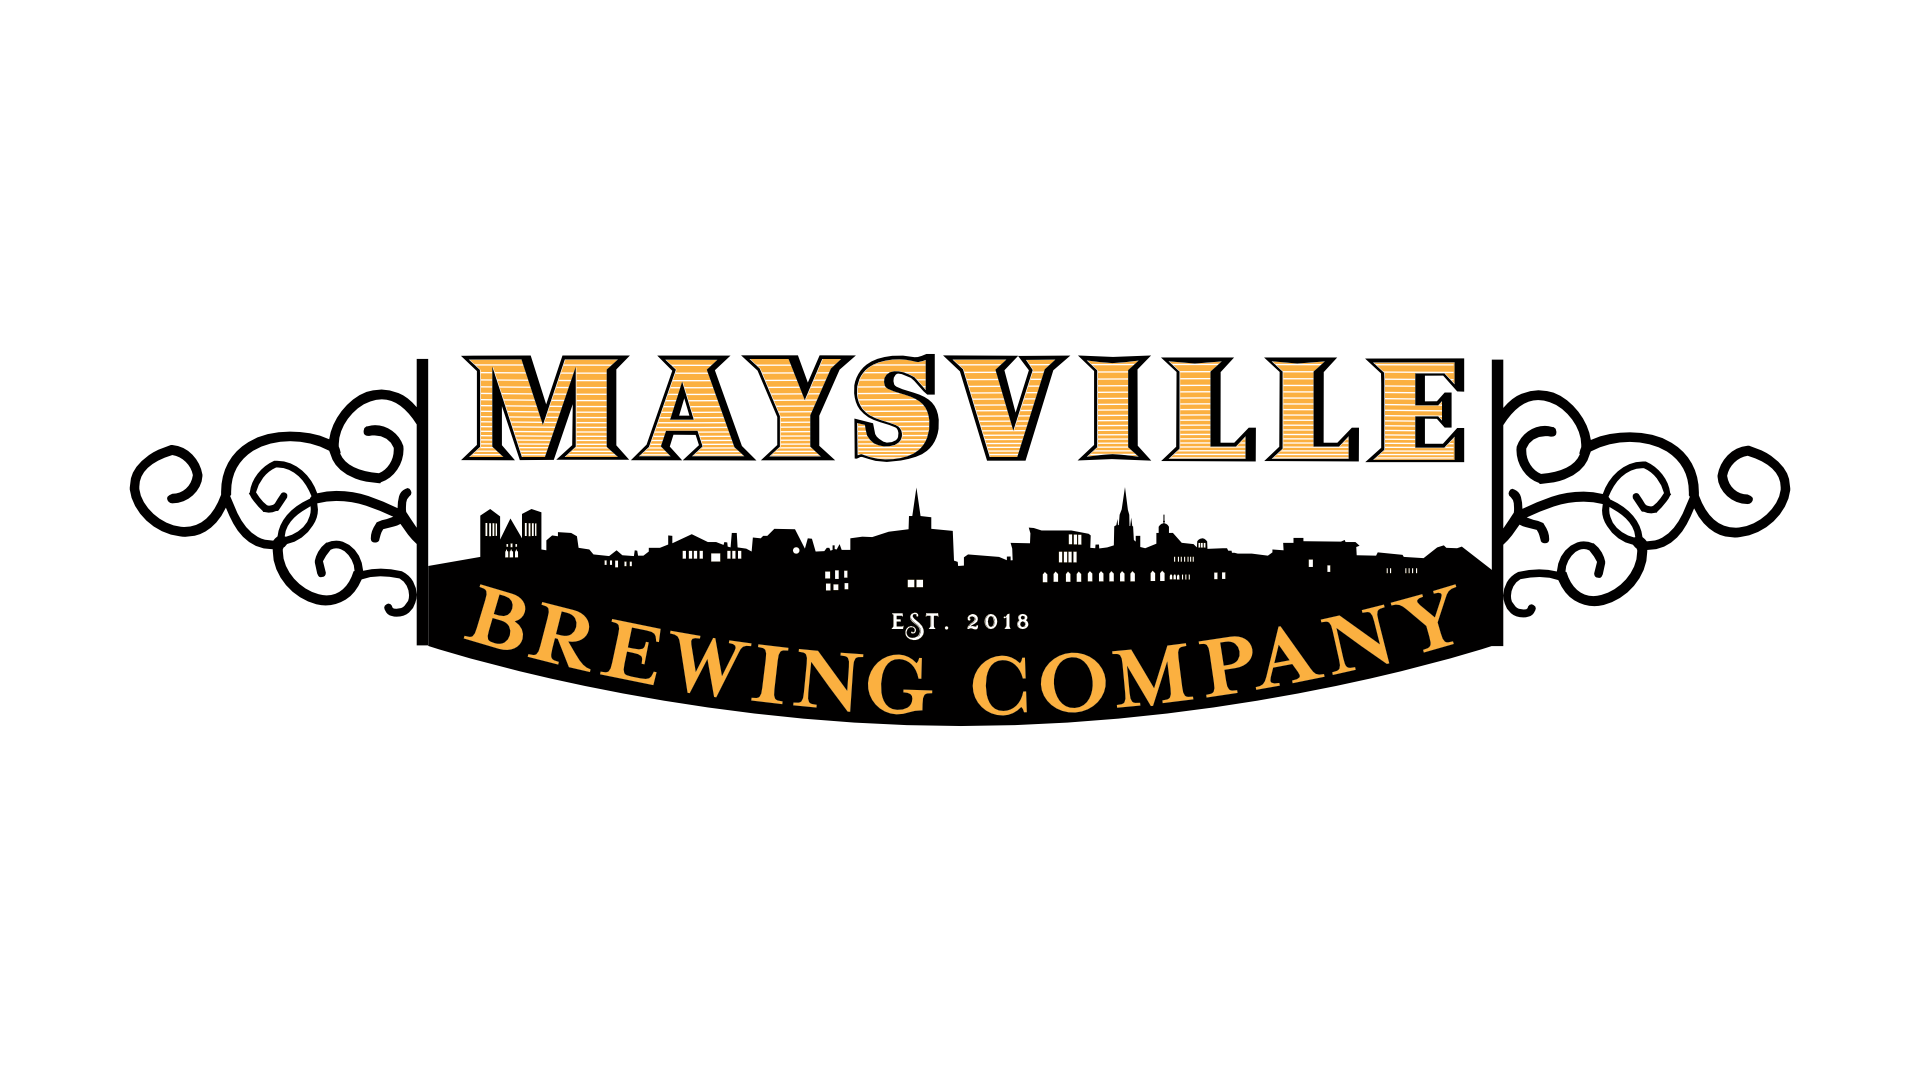 Maysville Brewing Co. logo